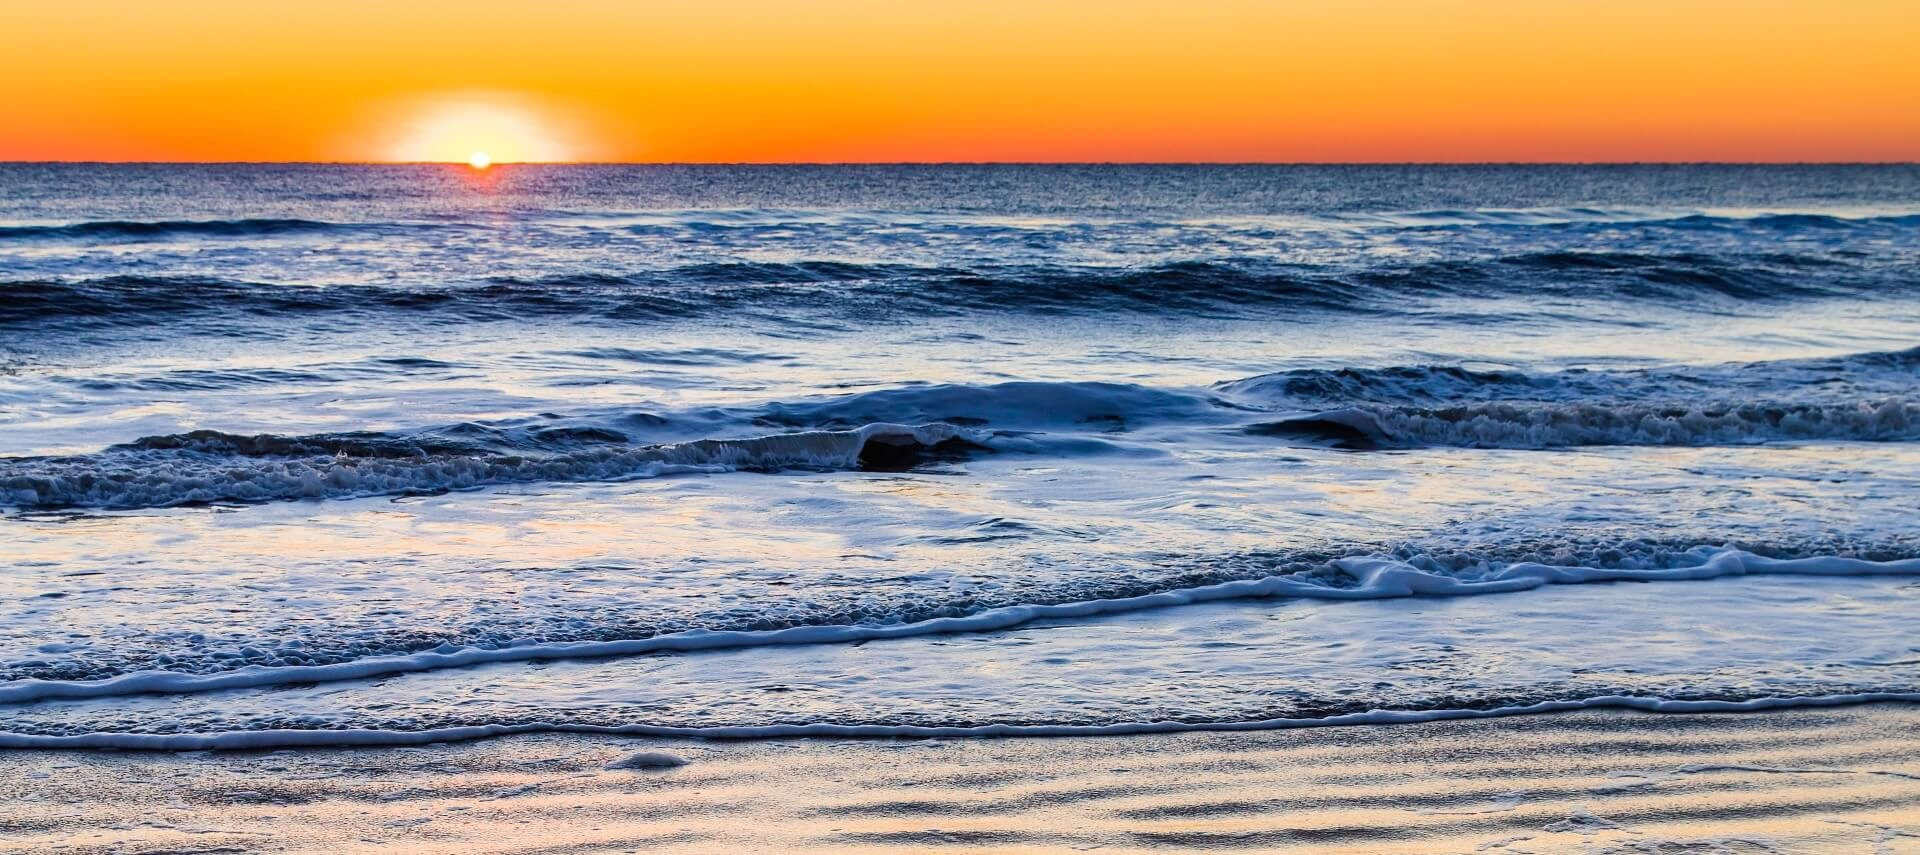 Bright yellow and orange sunset over ocean waters with soft waves breaking on the shore